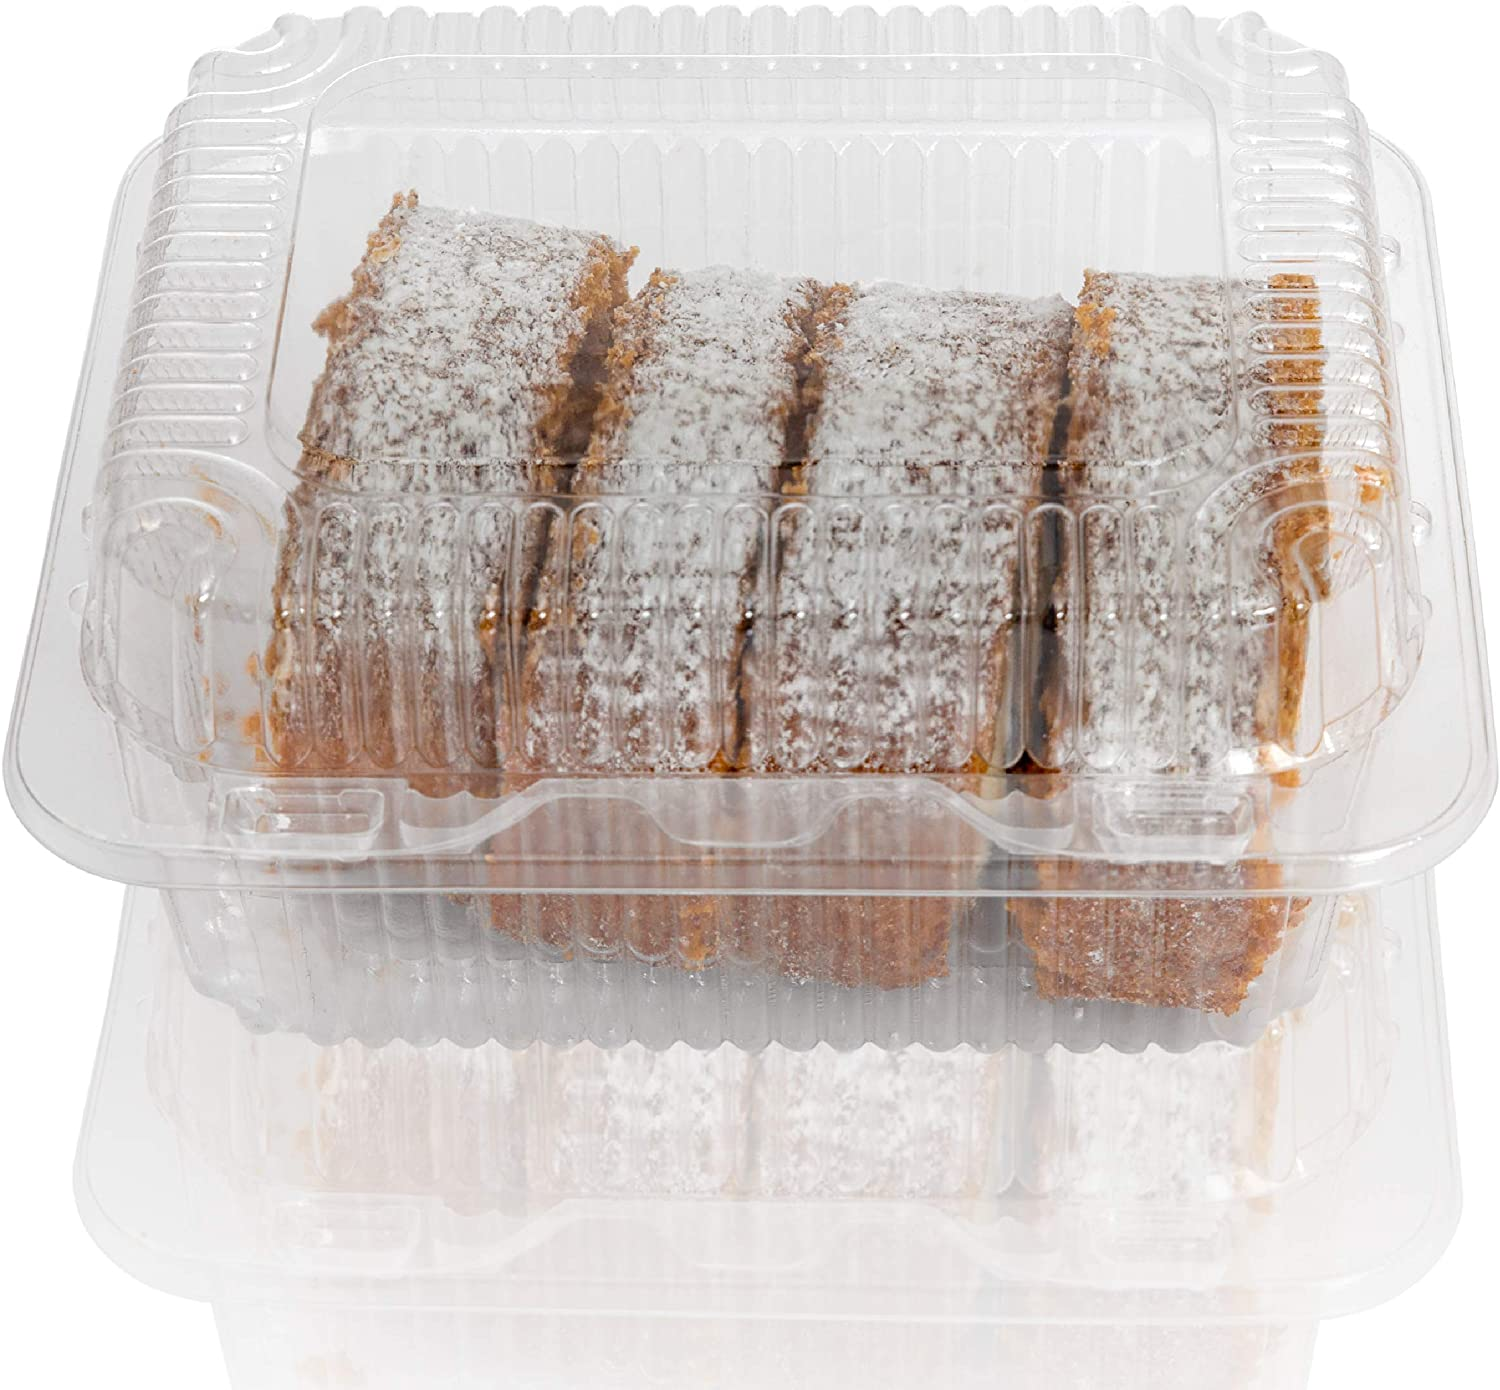 """Clear Plastic Hinged Food containers - Sturdy Disposable Bakery Lid Cookie Container Boxes - 7""""x 6""""x3.5"""" (20)"""